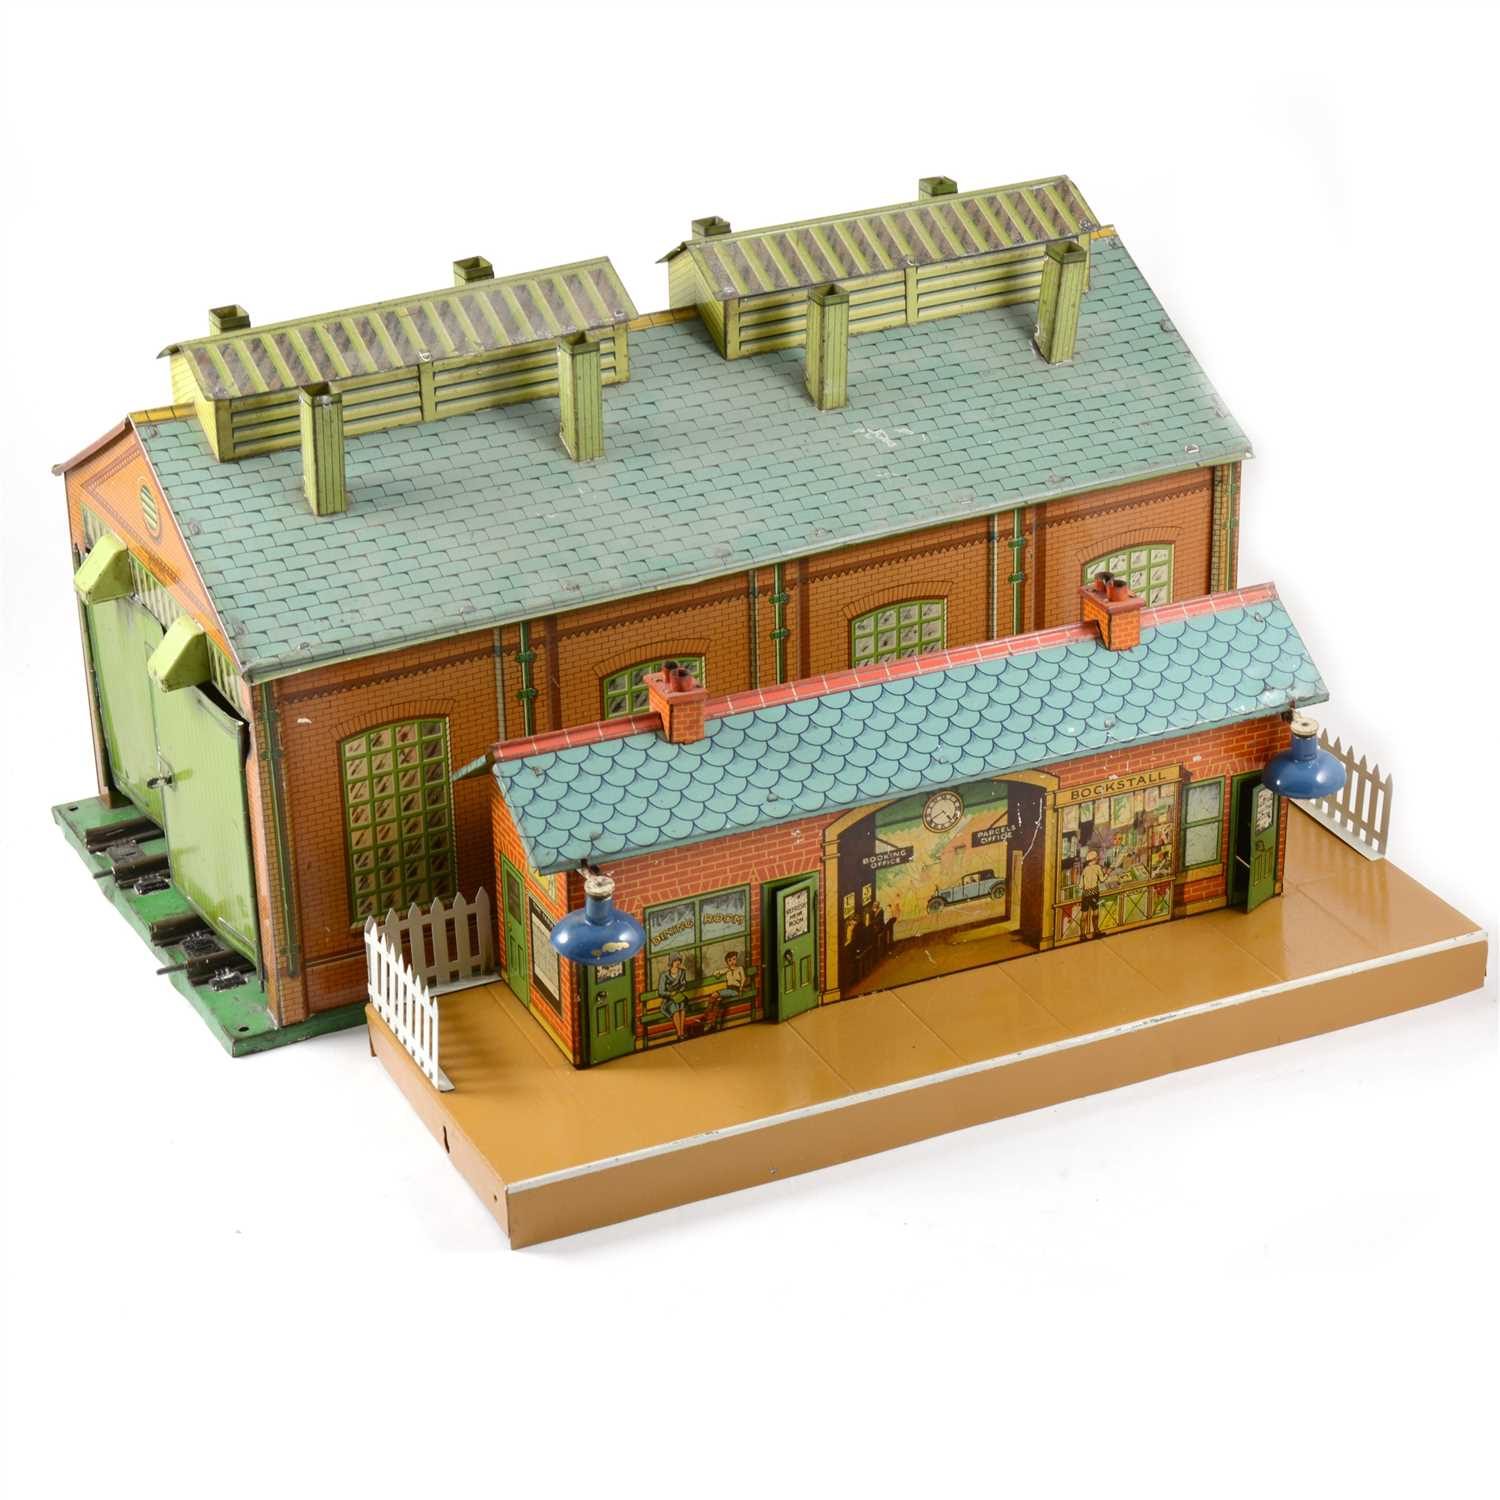 Lot 39 - Hornby O gauge double engine shed and station platform with electric lights.